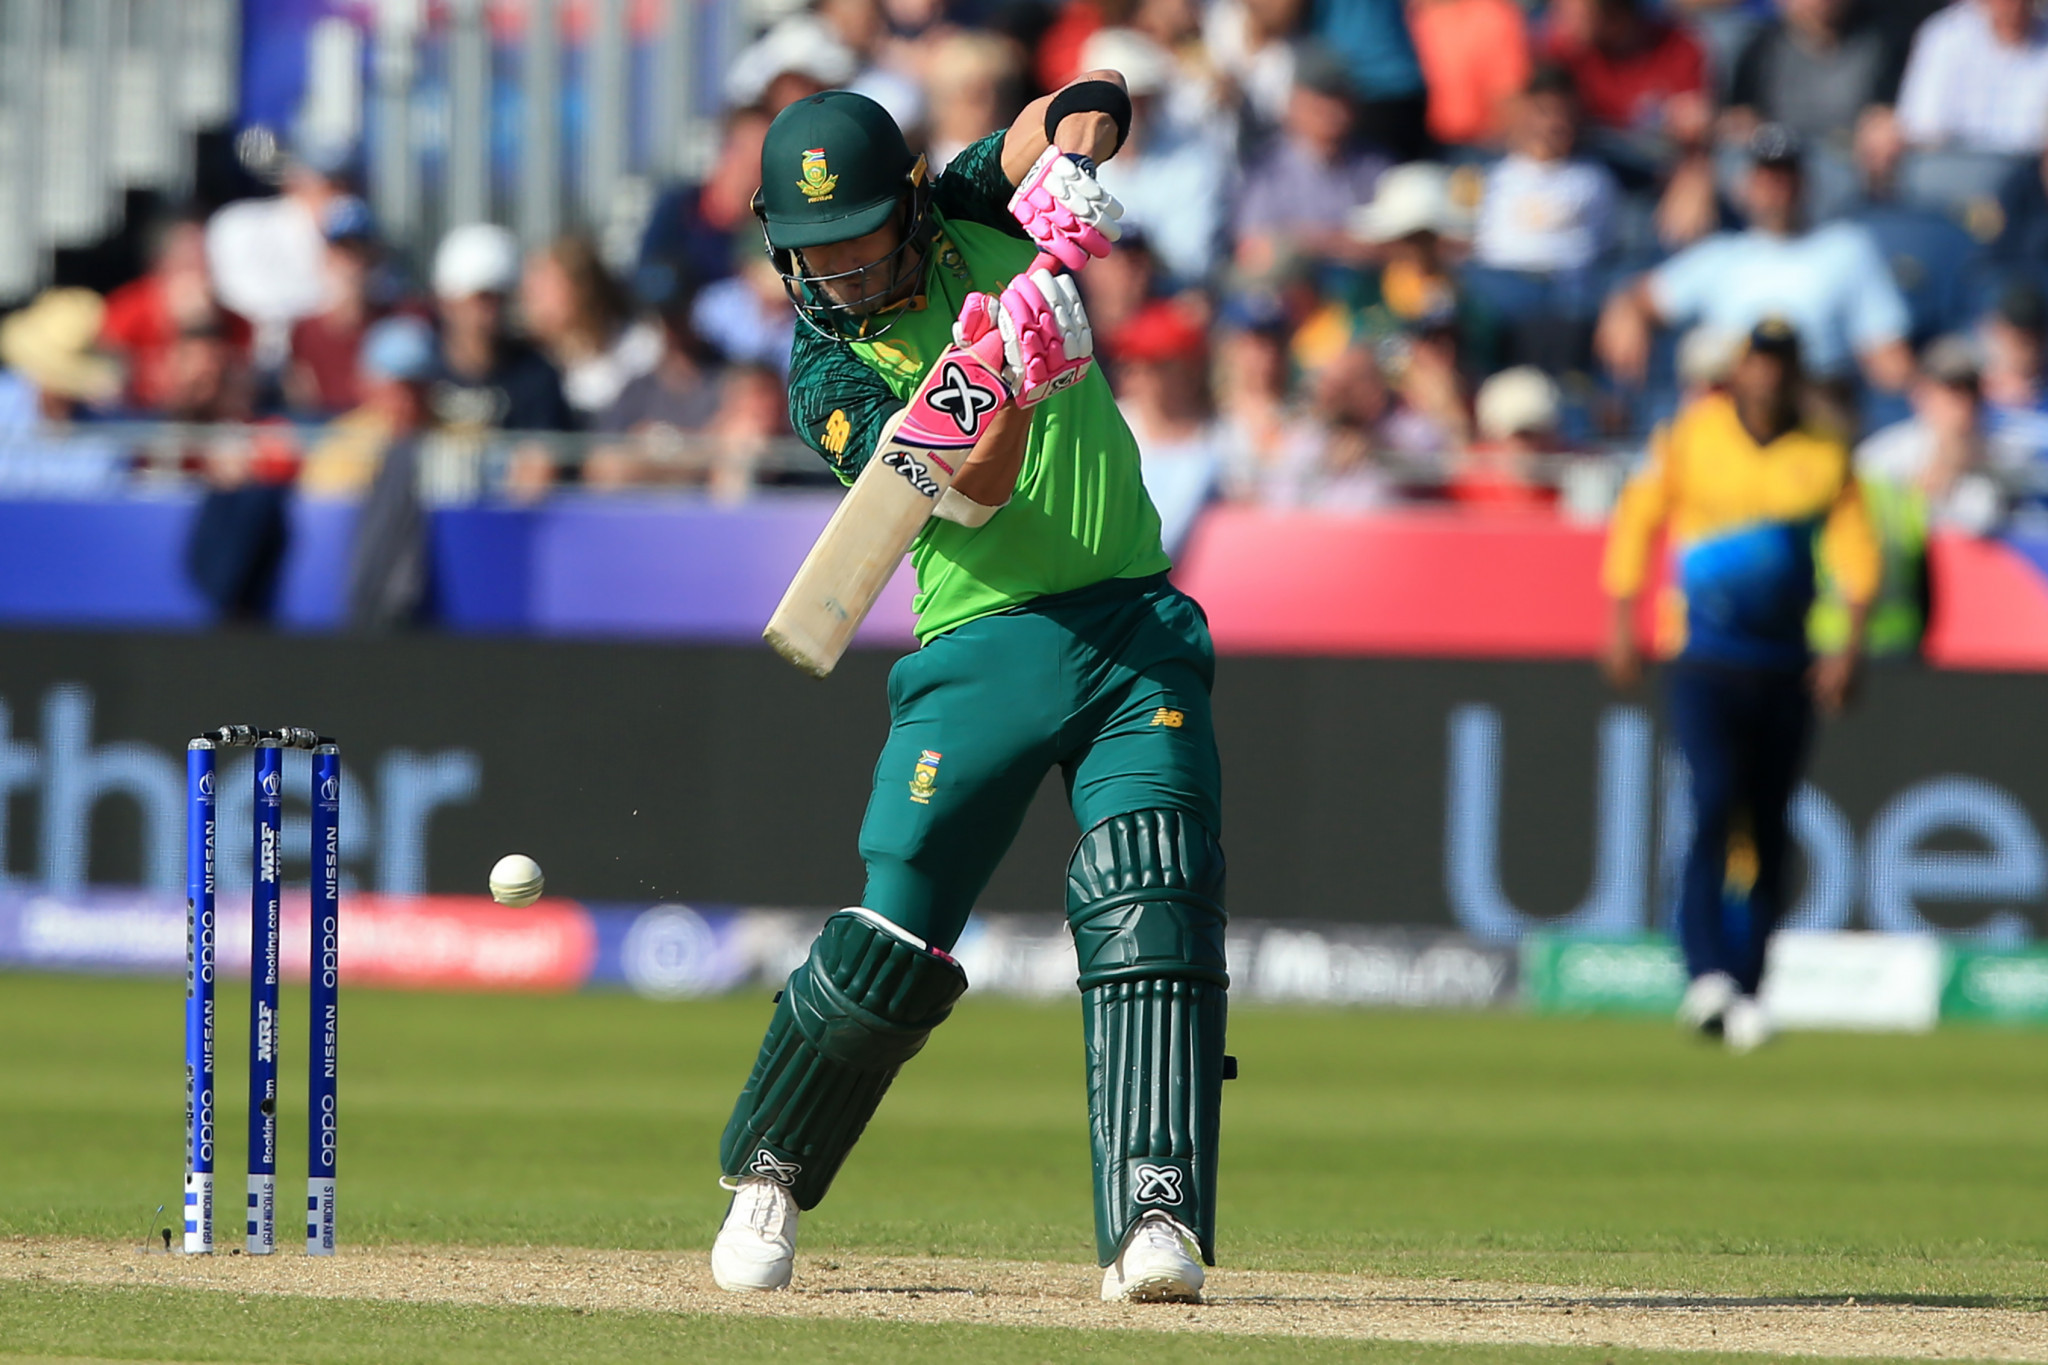 South Africa dent Sri Lankan semi-final hopes with nine-wicket win at Cricket World Cup